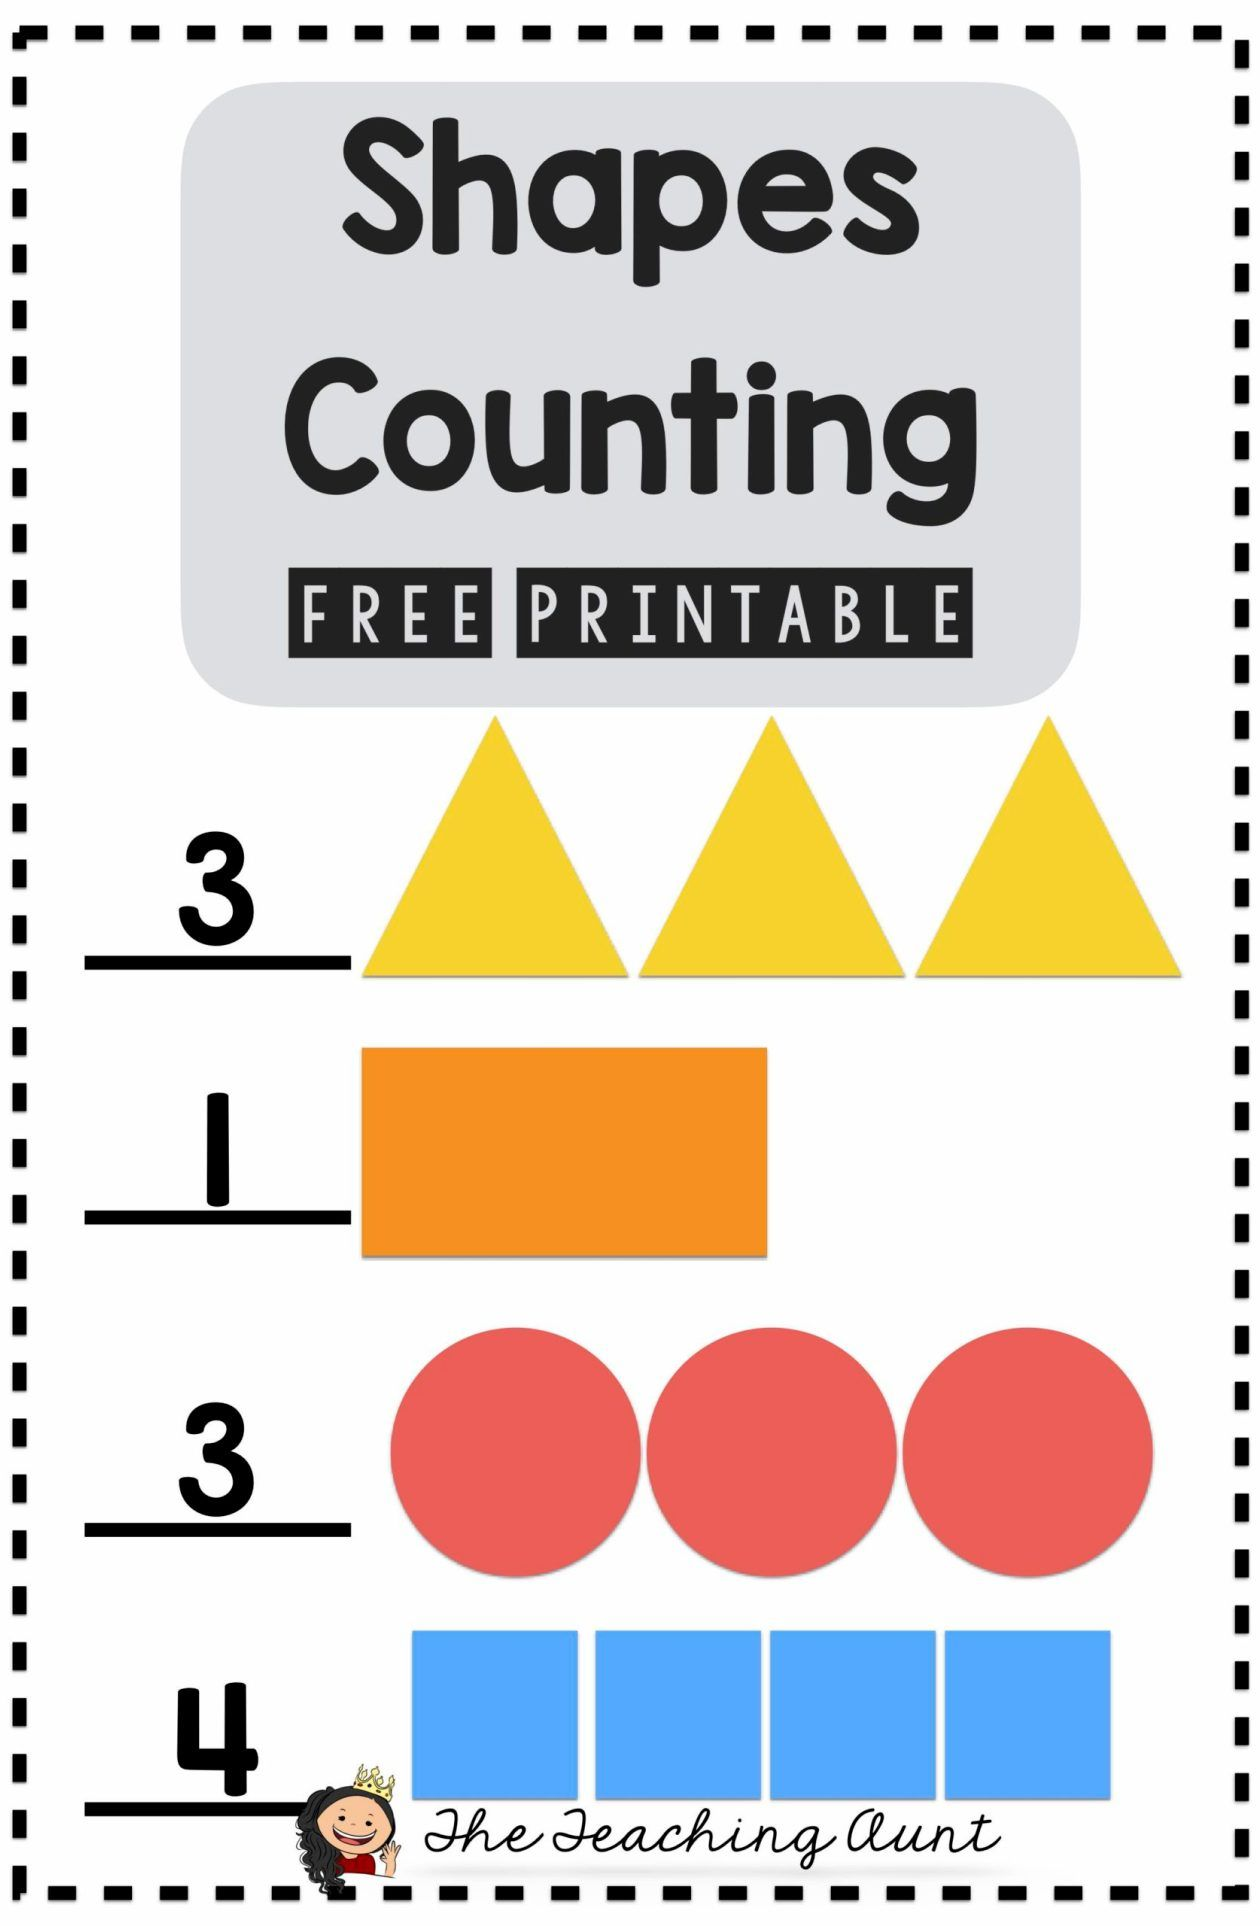 Counting Shapes Worksheets In